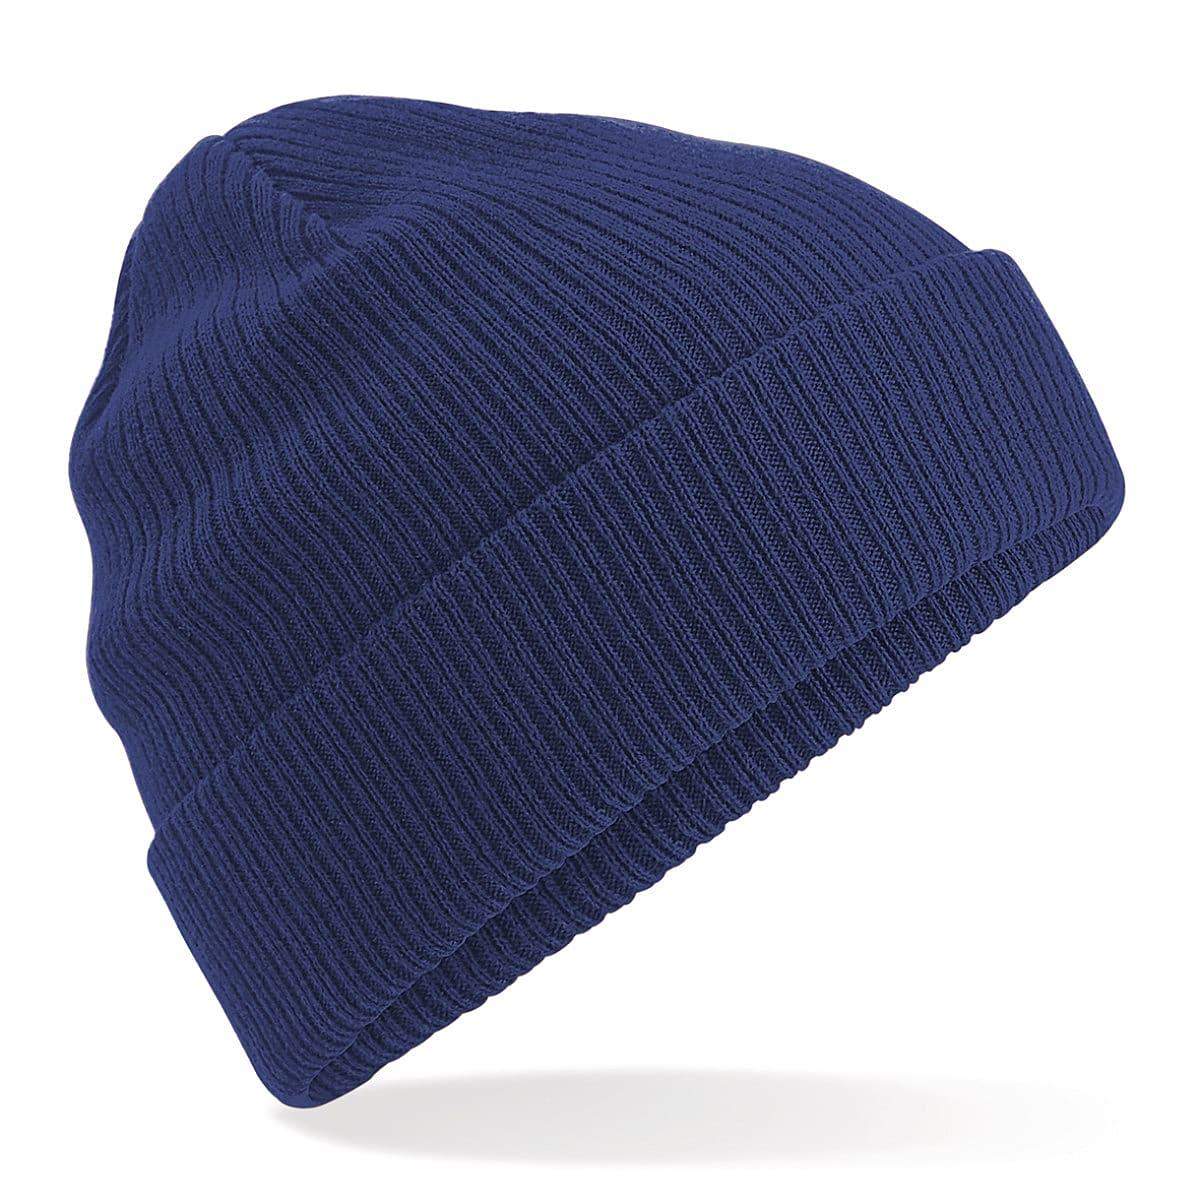 Beechfield Organic Cotton Beanie Hat in Oxford Navy (Product Code: B50)